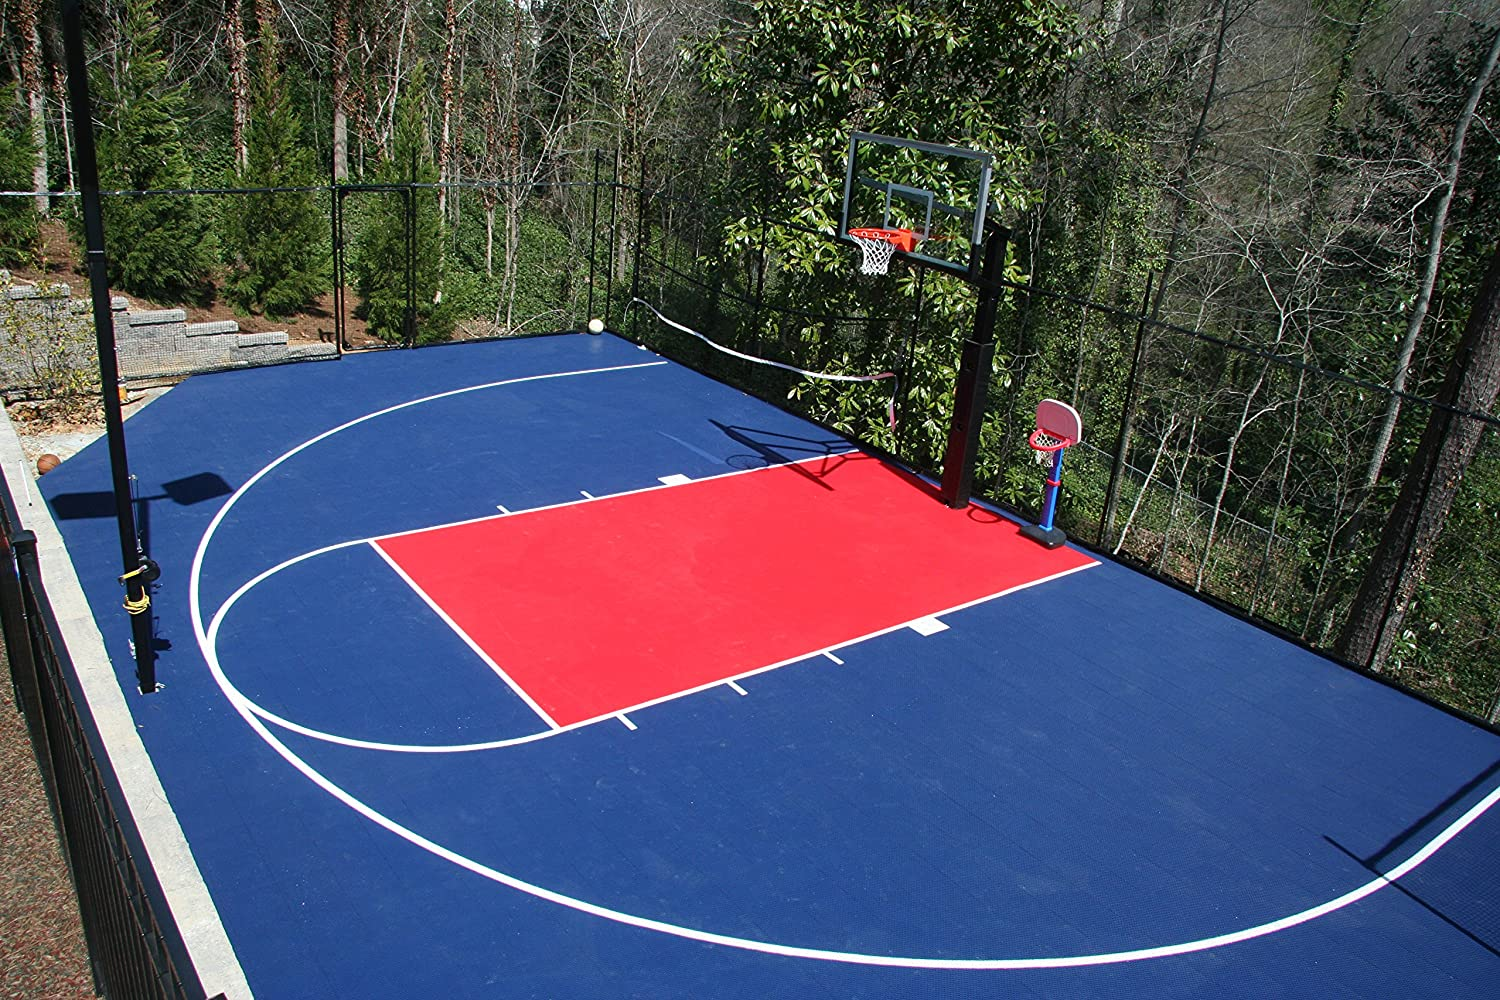 Amazoncom IncStores Outdoor Baskteball Court Flooring Half - Backyard basketball court ideas